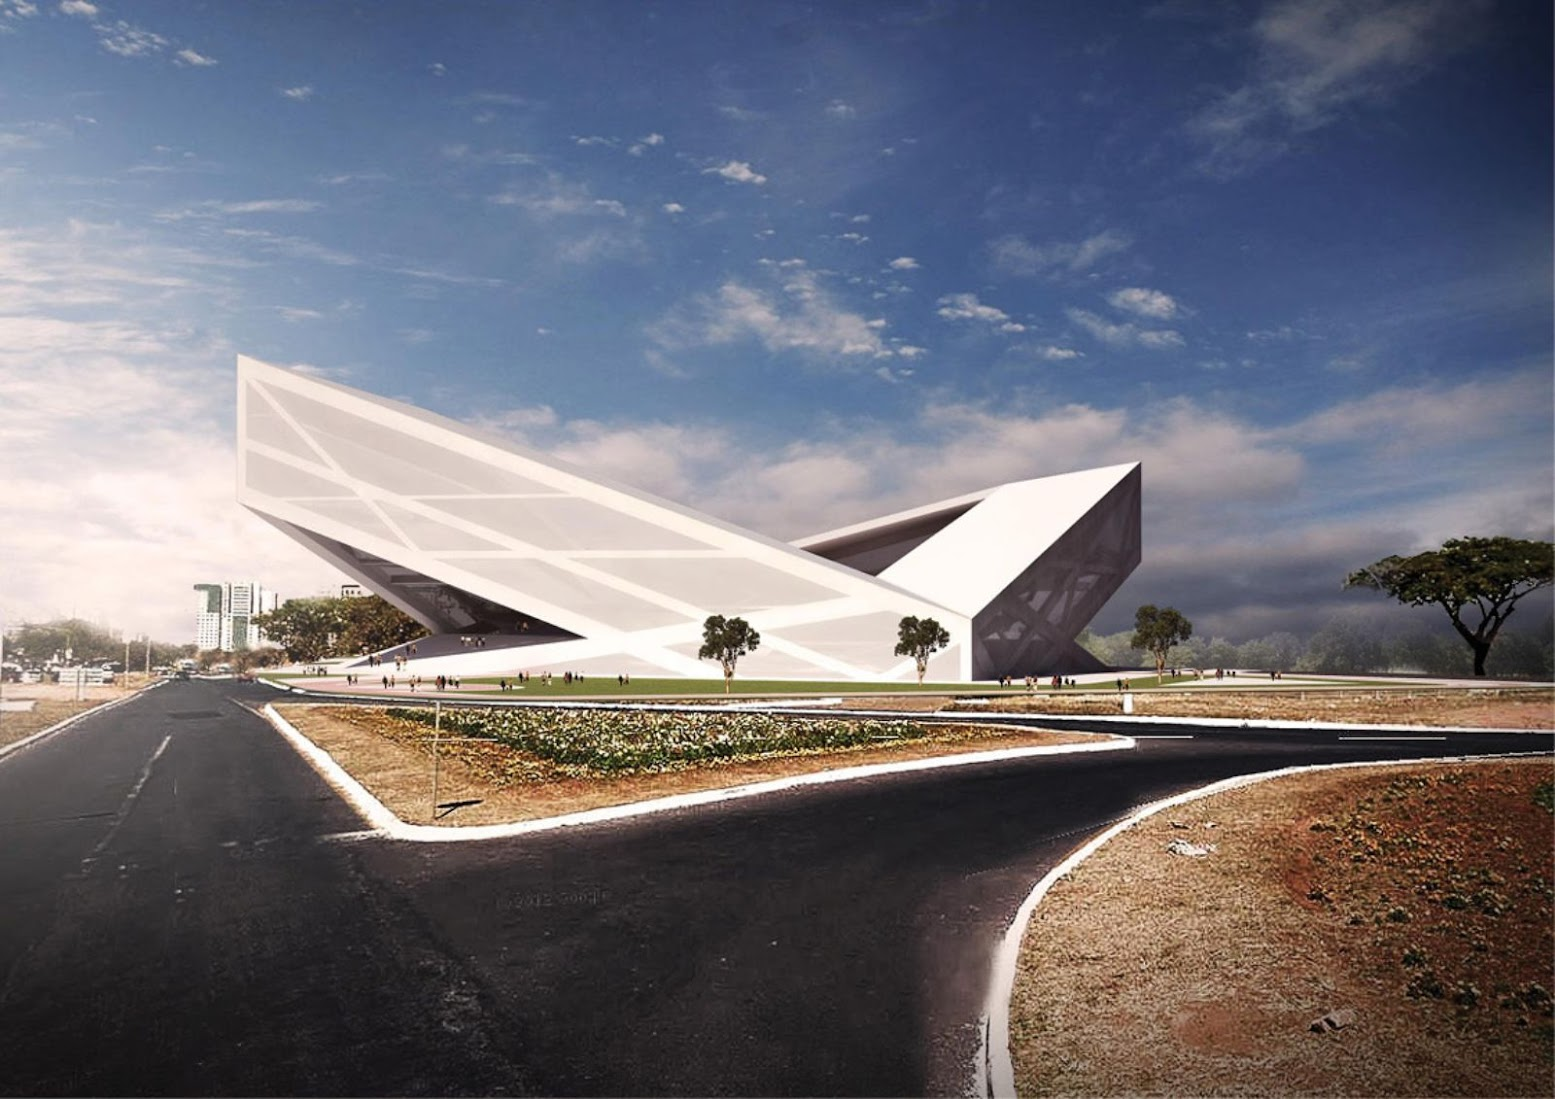 Brasilia - Distretto Federale, Brasile: [BRASILIA ATHLETICS STADIUM BY BF ARCHITECTURE]